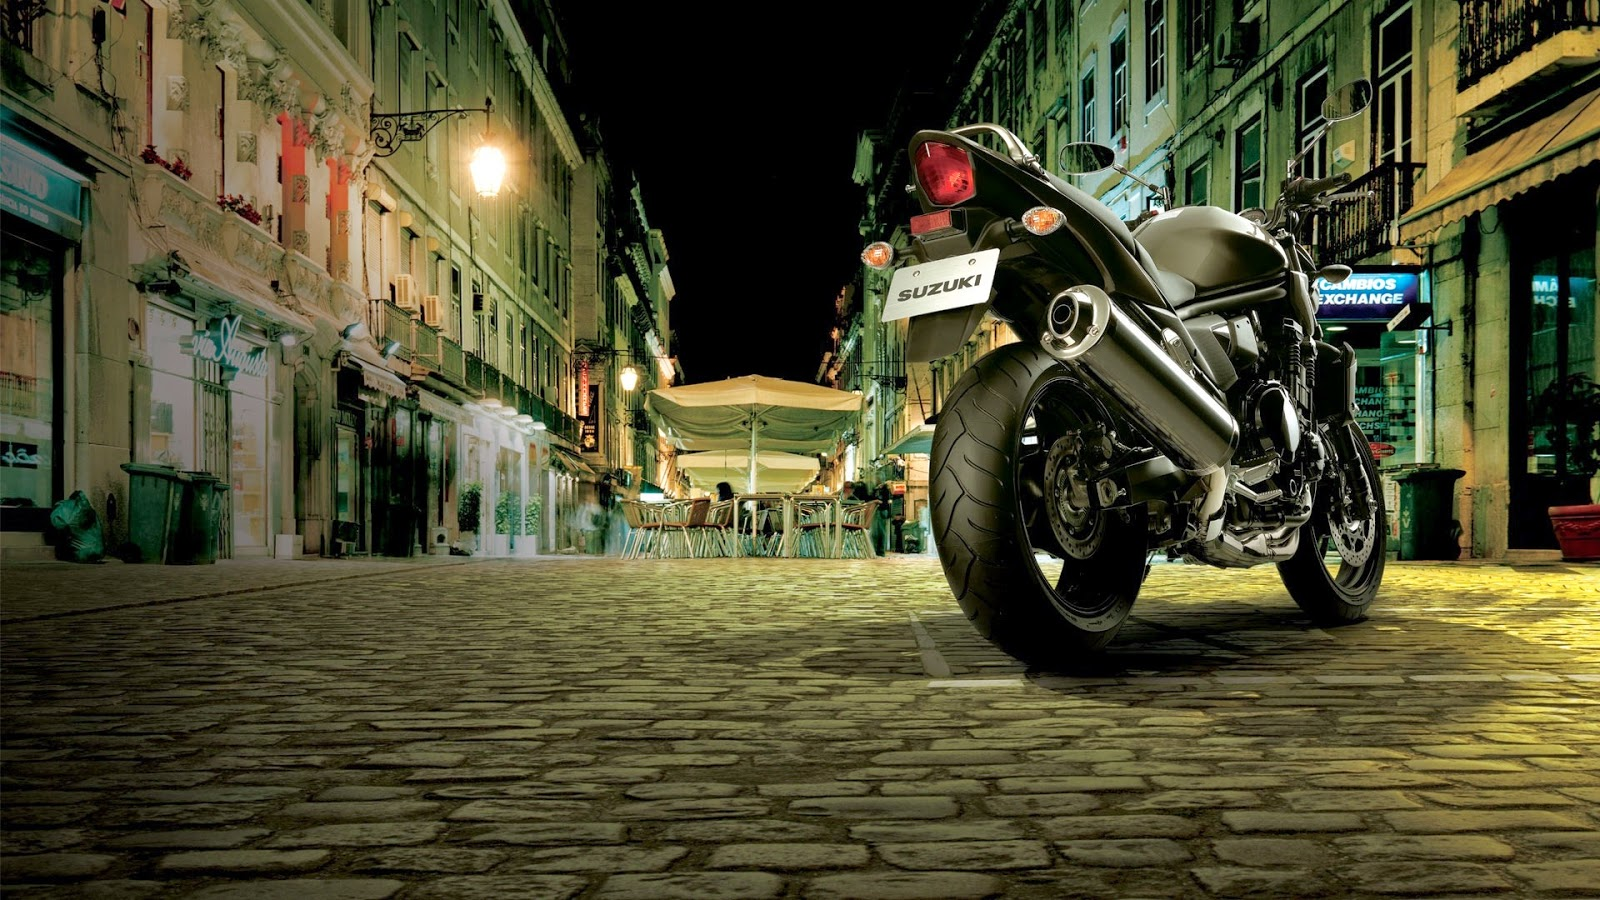 24 Motorcycle Wallpapers Most Beautiful Places In The